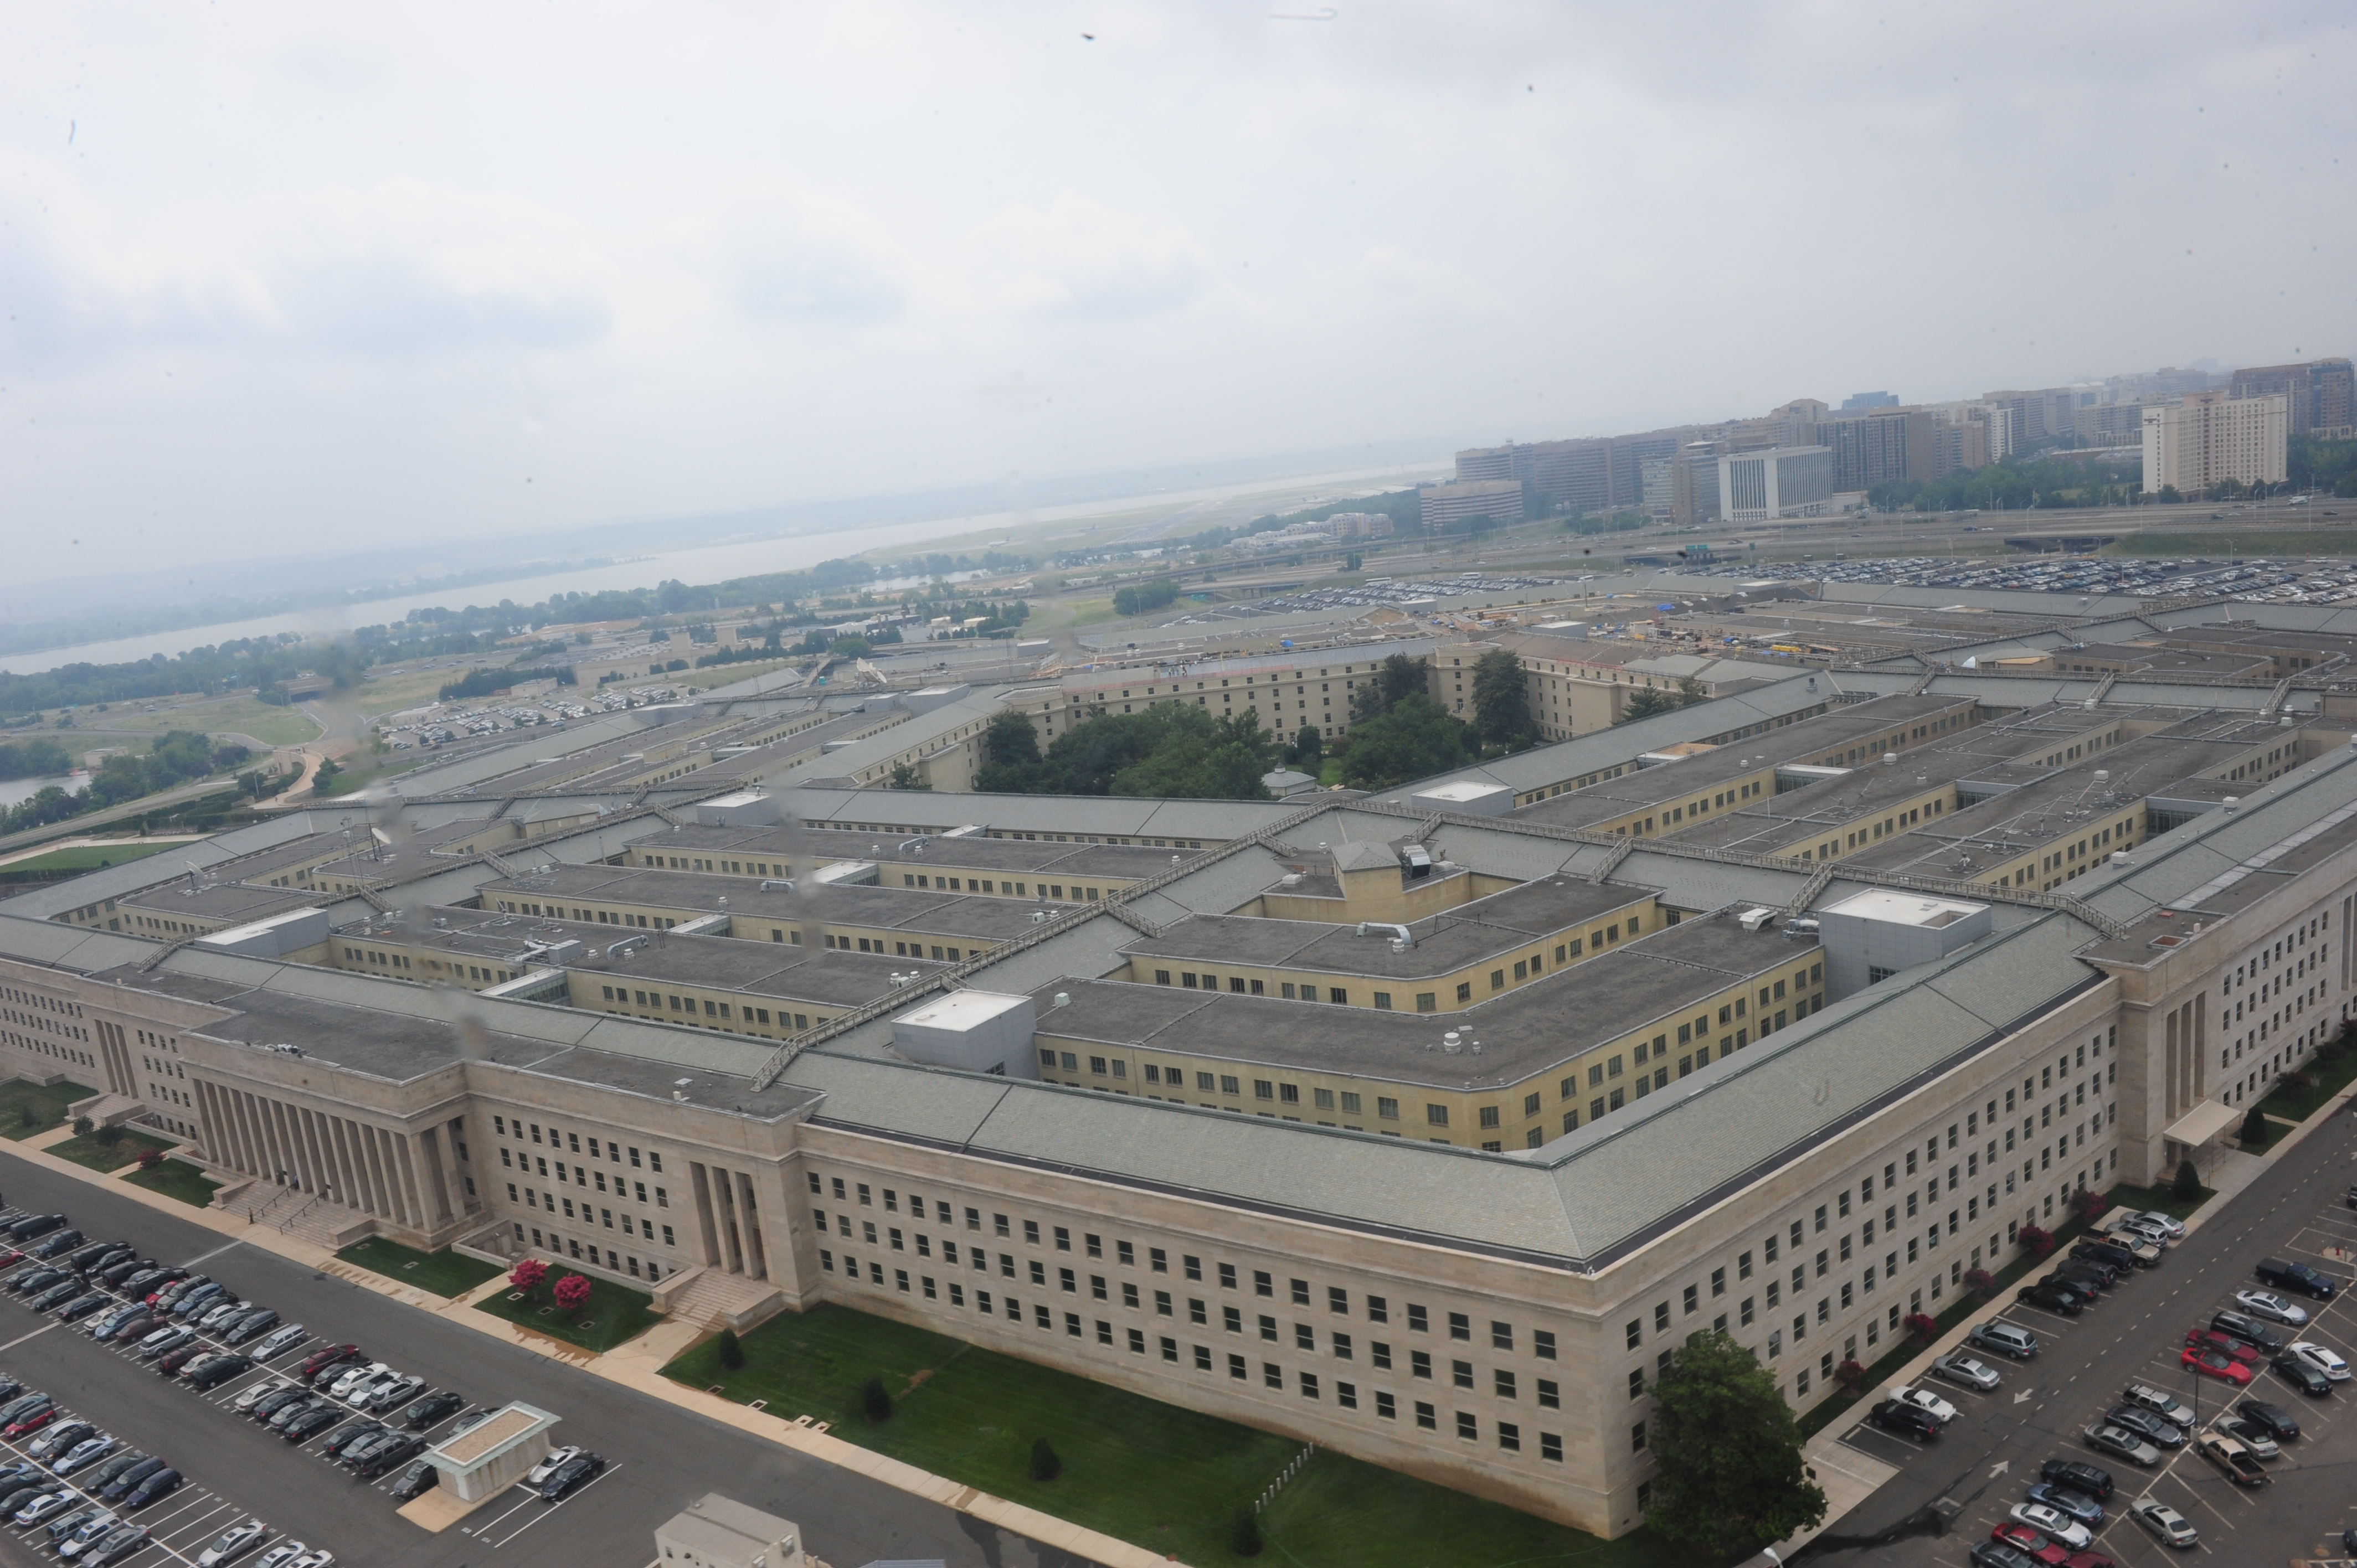 4 ch helicopter with File An Aerial View Of The Pentagon As Seen From A Marine Corps Ch 46 Sea Knight Helicopter  July 8  2011 110708 M Ks211 119 on Aircraft besides File An aerial view of the Pentagon as seen from a Marine Corps CH 46 Sea Knight helicopter  July 8  2011 110708 M KS211 119 also Ch46 additionally Logbook In Excel likewise Stoos map slopes.